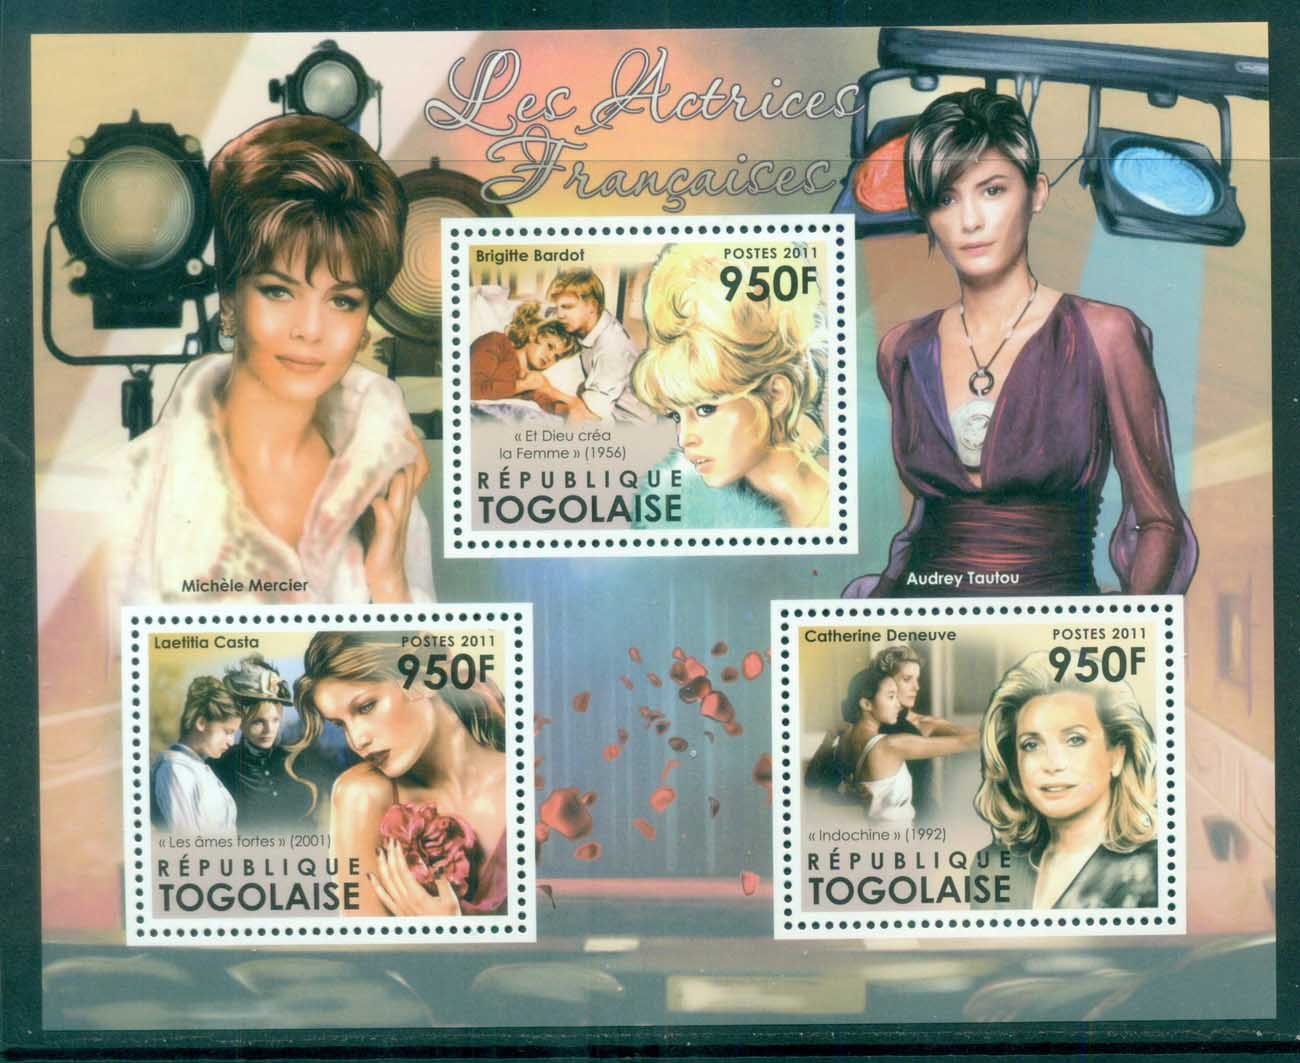 Togo 2011 Famous People, Film, Brigitte Bardot, Catherine Deneuve, French Actresses MS MUH TG11513a